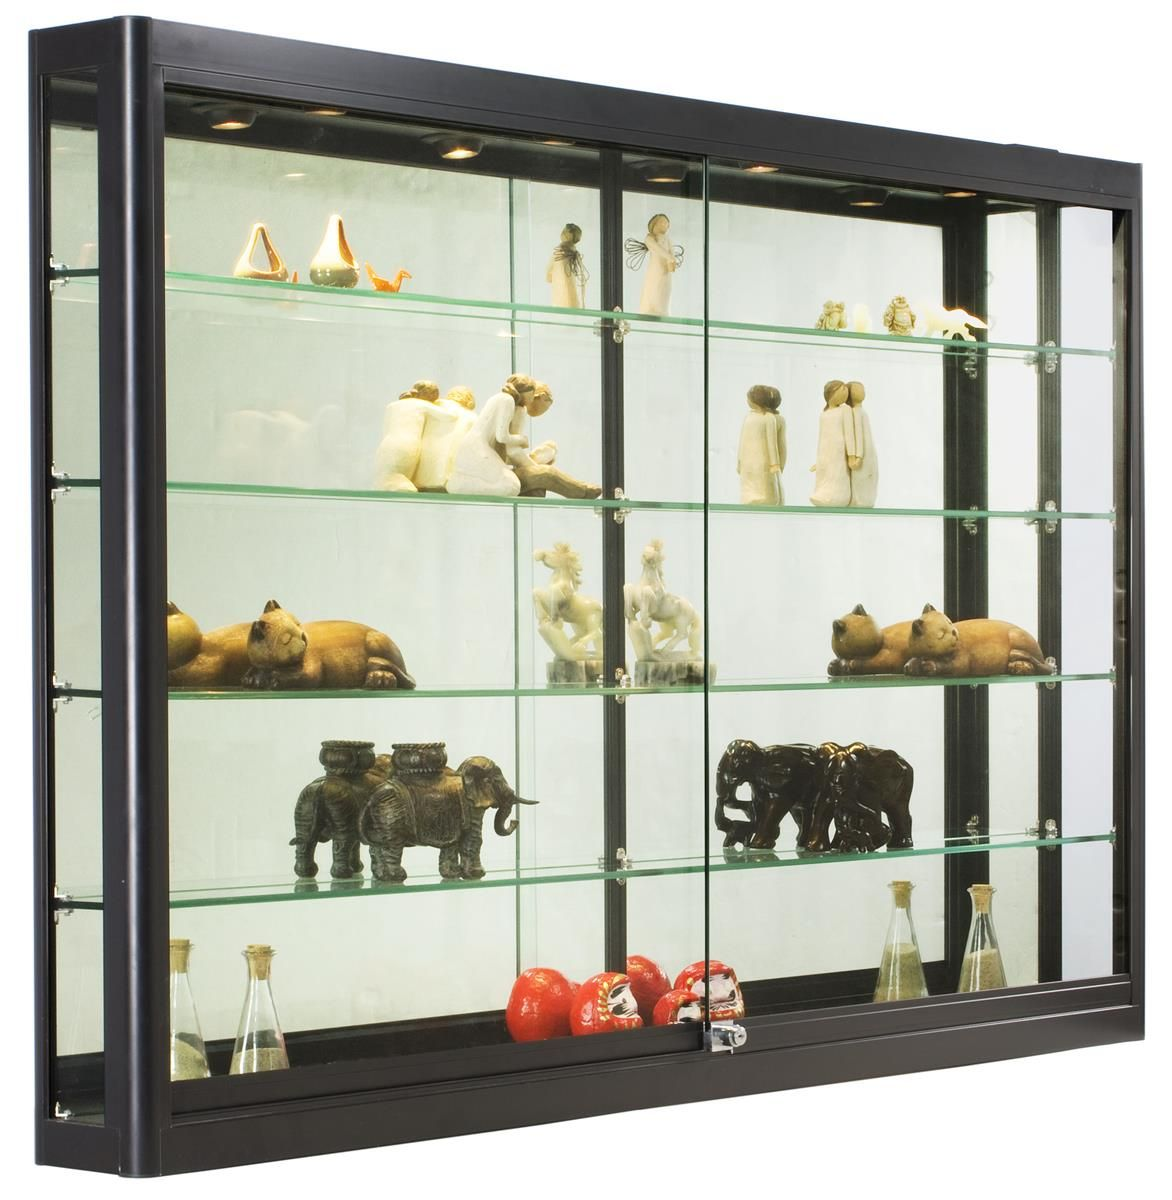 Glass Display Cabinet Sydney 5ft Wall Mounted Display Case W 4 Top Halogen Lights